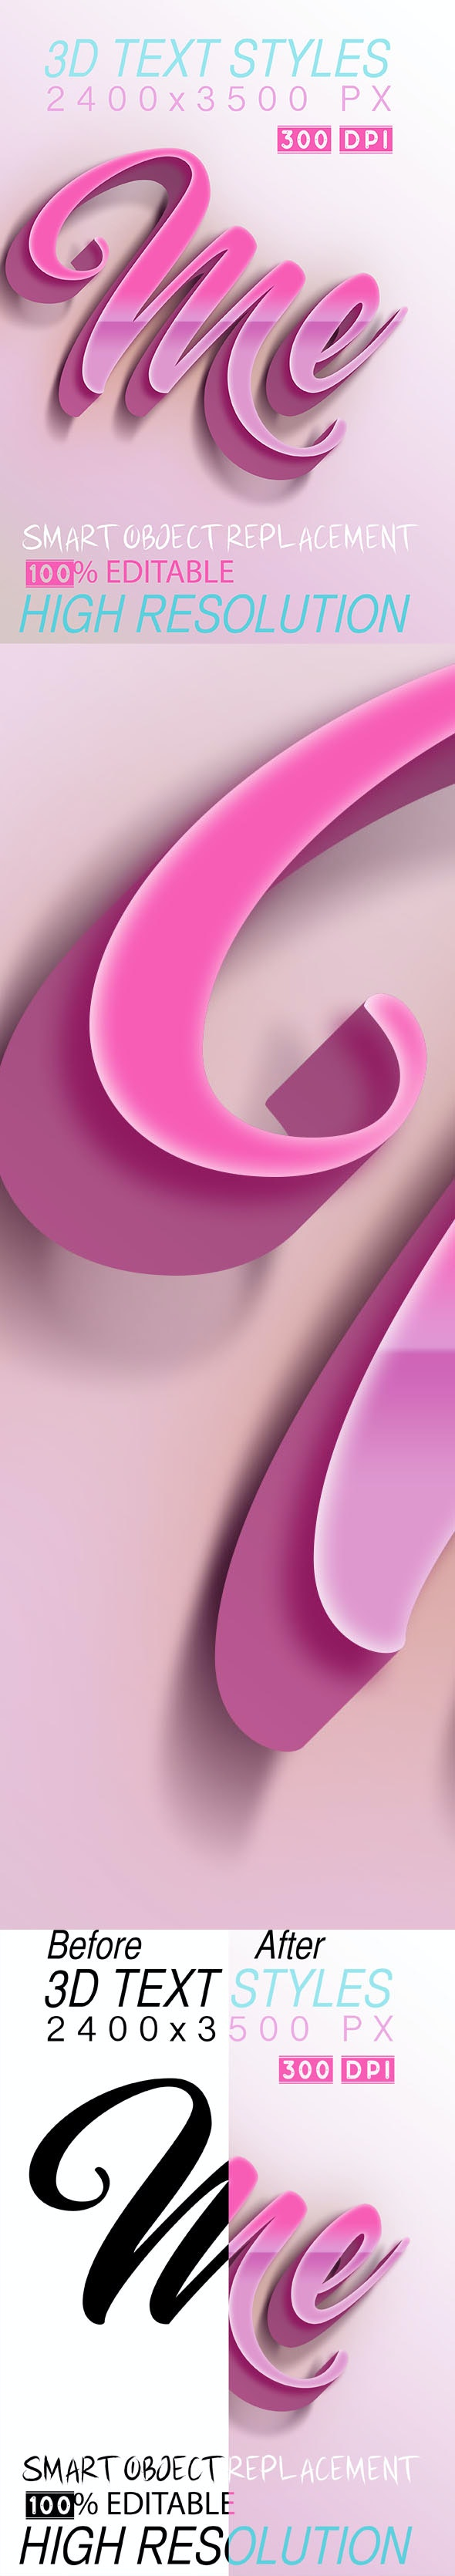 3D Text Pink Styles - Text Effects Styles